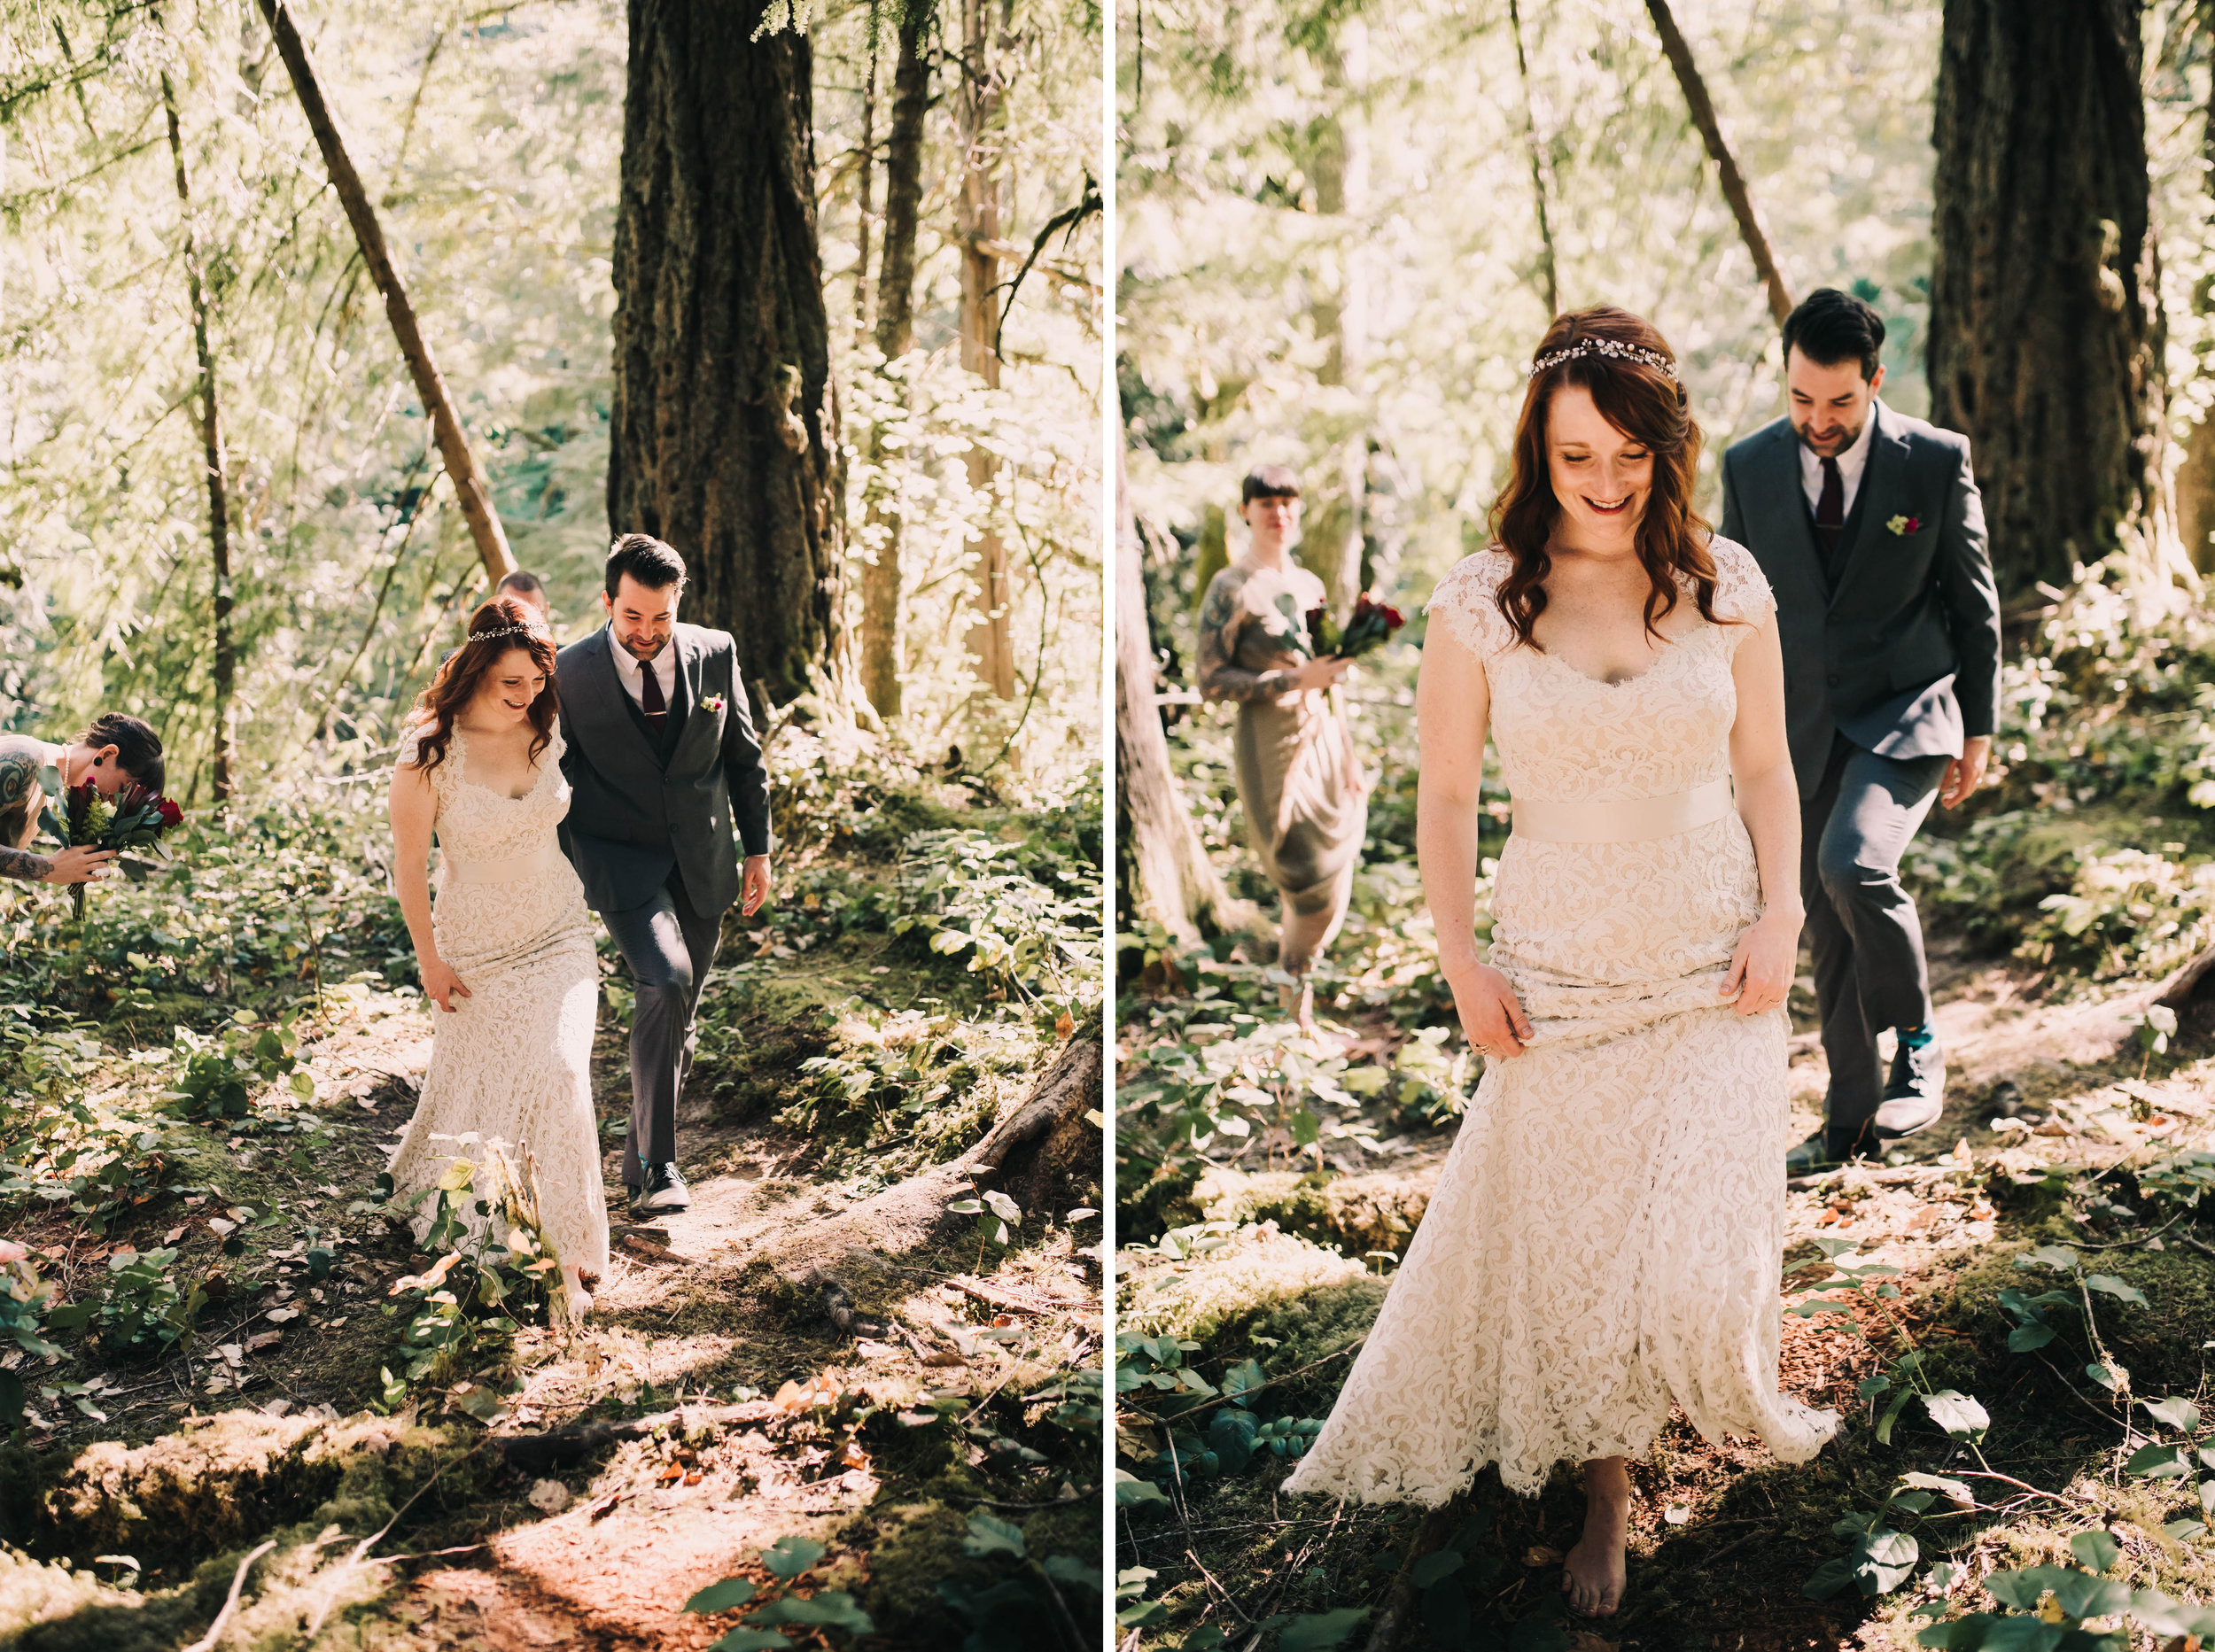 washington forest elopement photographer bride and groom happy lookslikefilm.jpg